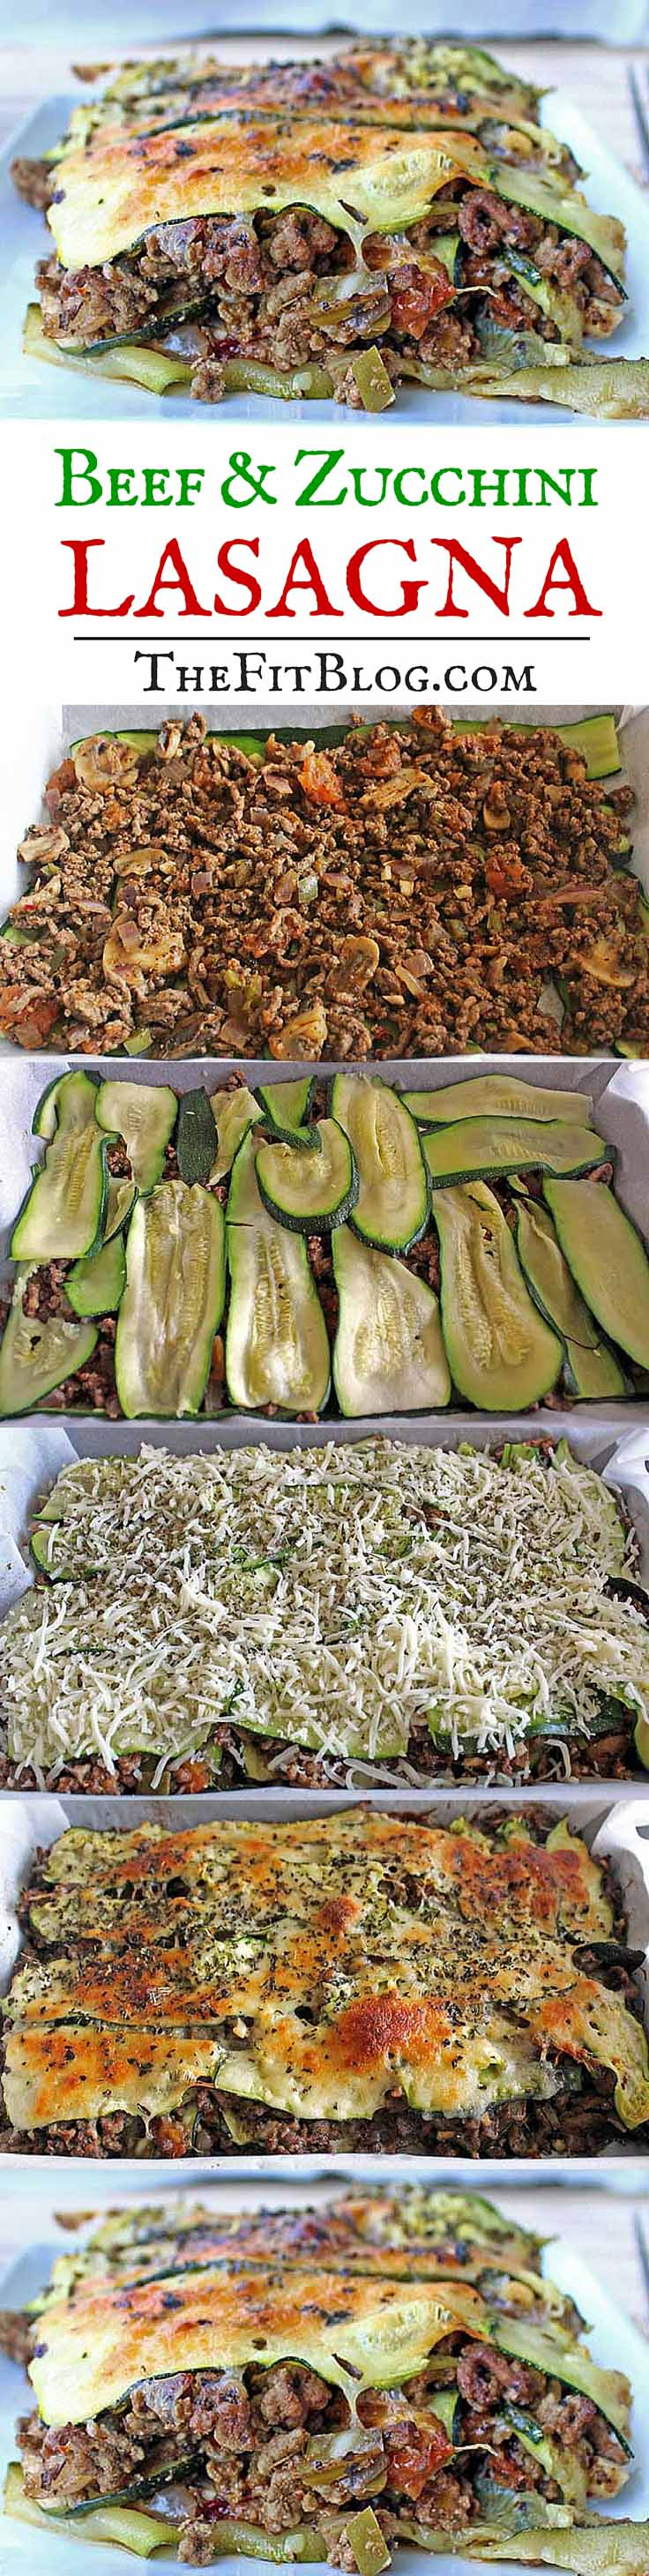 Low Carb Zucchini Lasagna is a healthy and tasty alternative to normal lasagna with only 12 grams of carbs per serving. And it's wheat and gluten free! #healthyeating #healthyrecipes #diabetesdiet #diabetesrecipes #diabeticdiet #diabeticfood #diabeticrecipe #diabeticfriendly #lowcarb #lowcarbdiet #lasagna #beef #zucchini #lowcarbrecipes